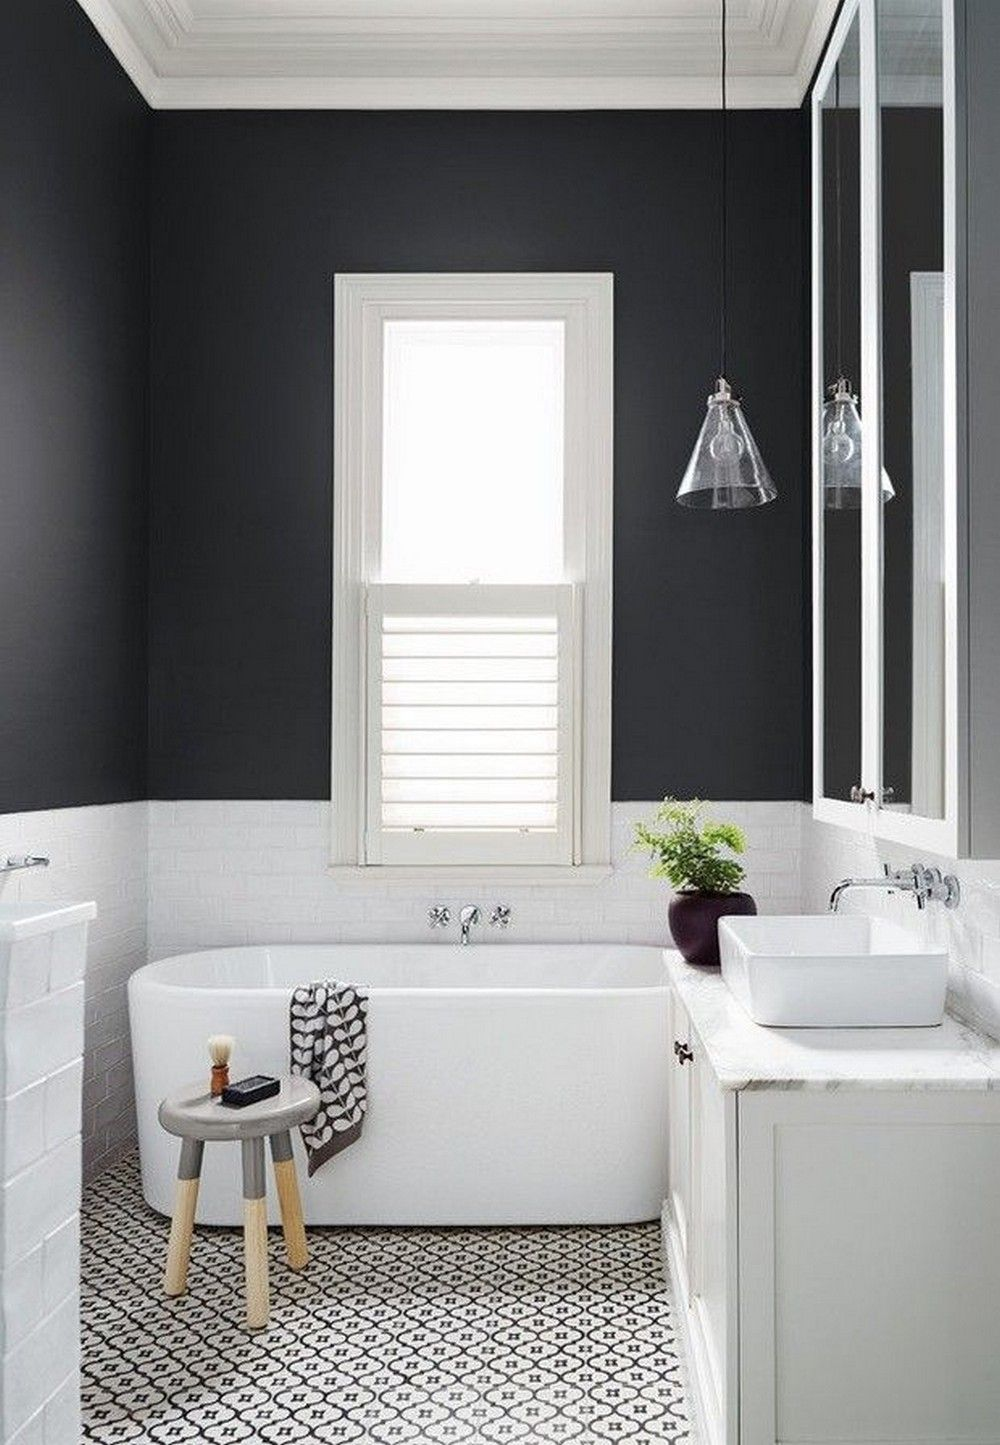 106 Clever Small Bathroom Decorating Ideas  Small Bathroom Small Unique Clever Small Bathroom Designs Inspiration Design